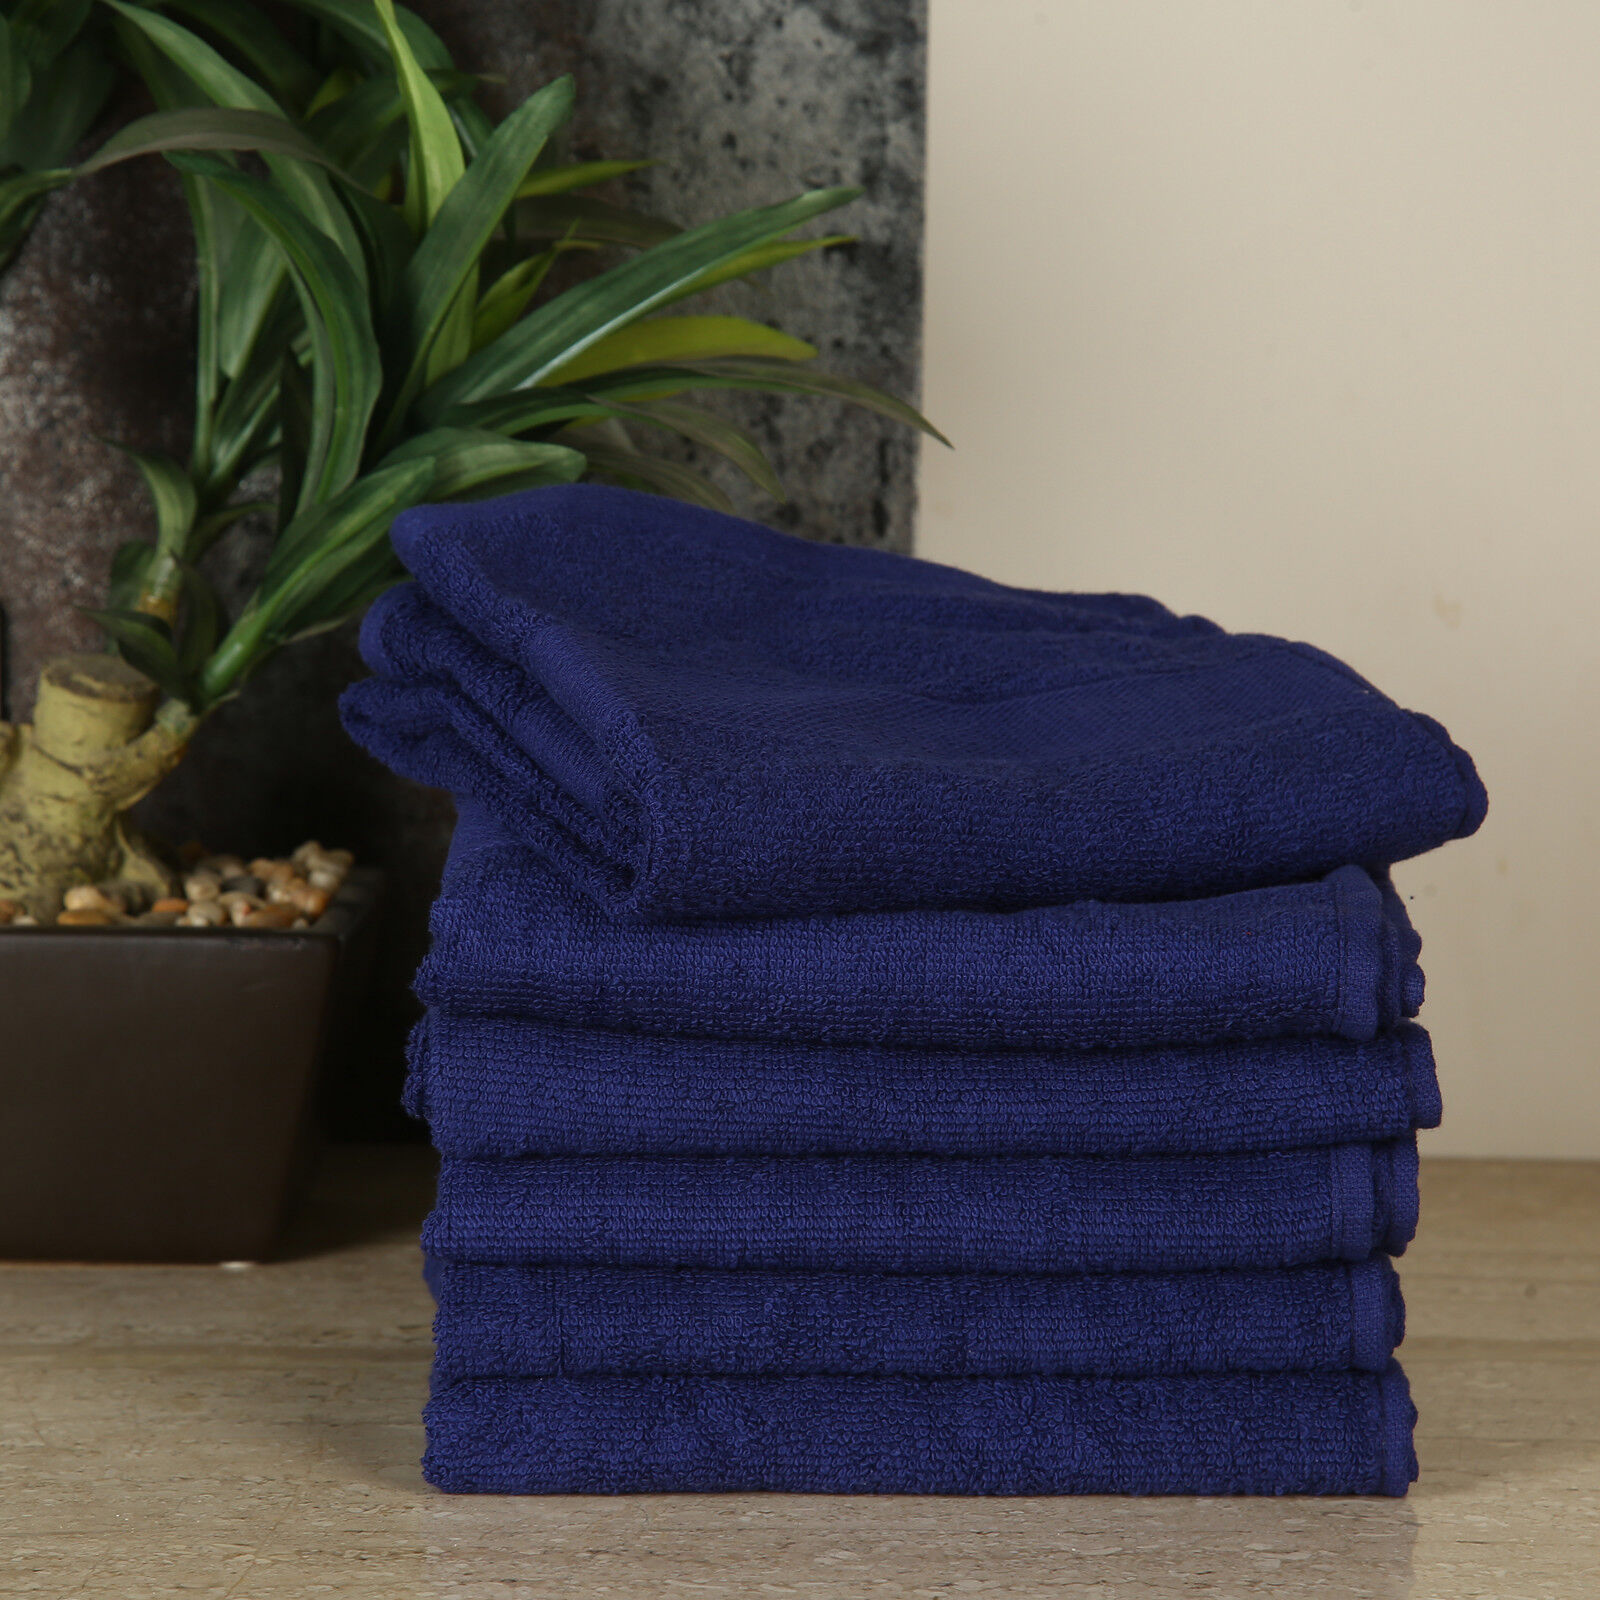 Blue Bathroom Hand Towels for Home Hotel and Spa Luxury Qual